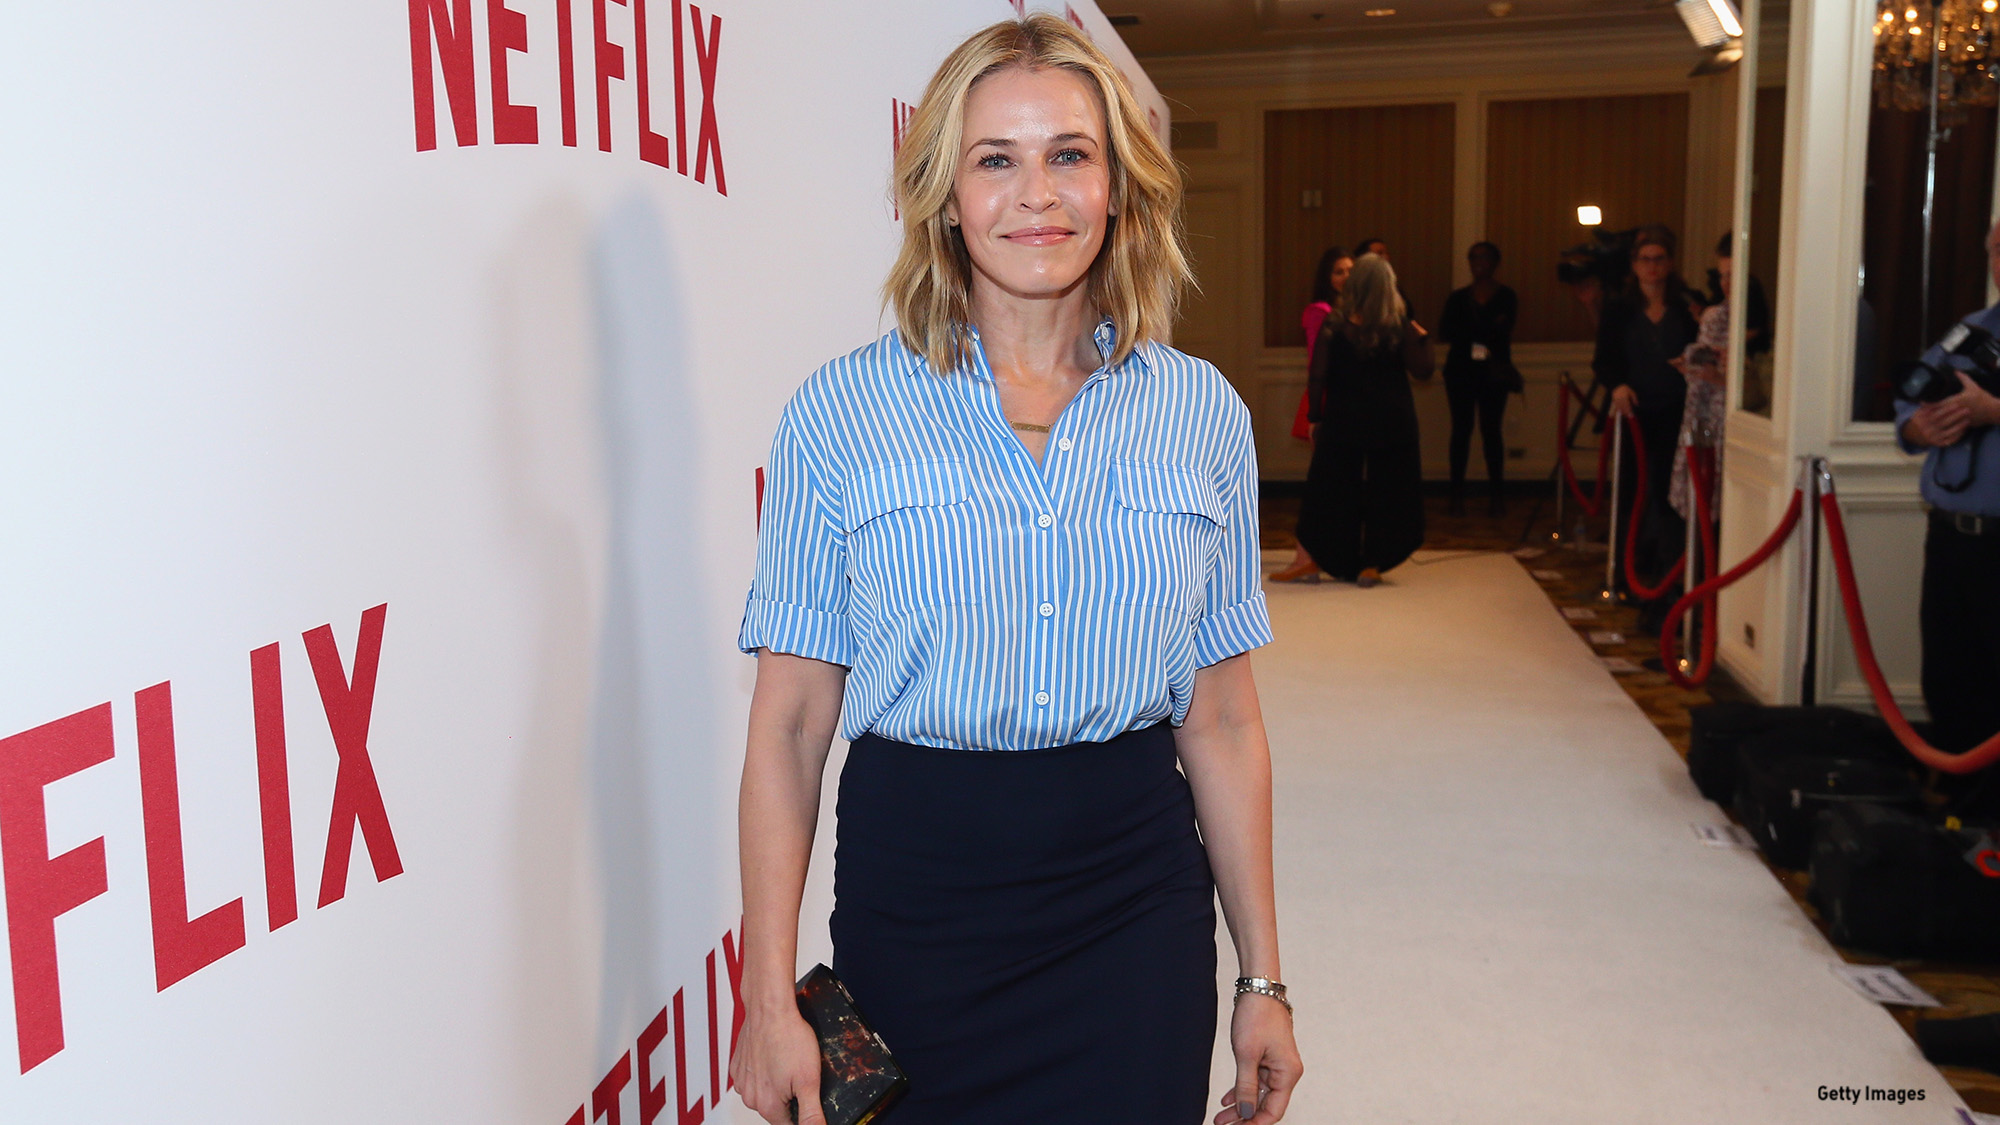 BEVERLY HILLS, CA - MAY 14: TV host/comedian Chelsea Handler attends Netflix's Rebels and Rule Breakers Luncheon and Panel Celebrating The Women of Netflix at the Beverly Wilshire Four Seasons Hotel on May 14, 2016 in Beverly Hills, California. (Photo by Mark Davis/Getty Images)